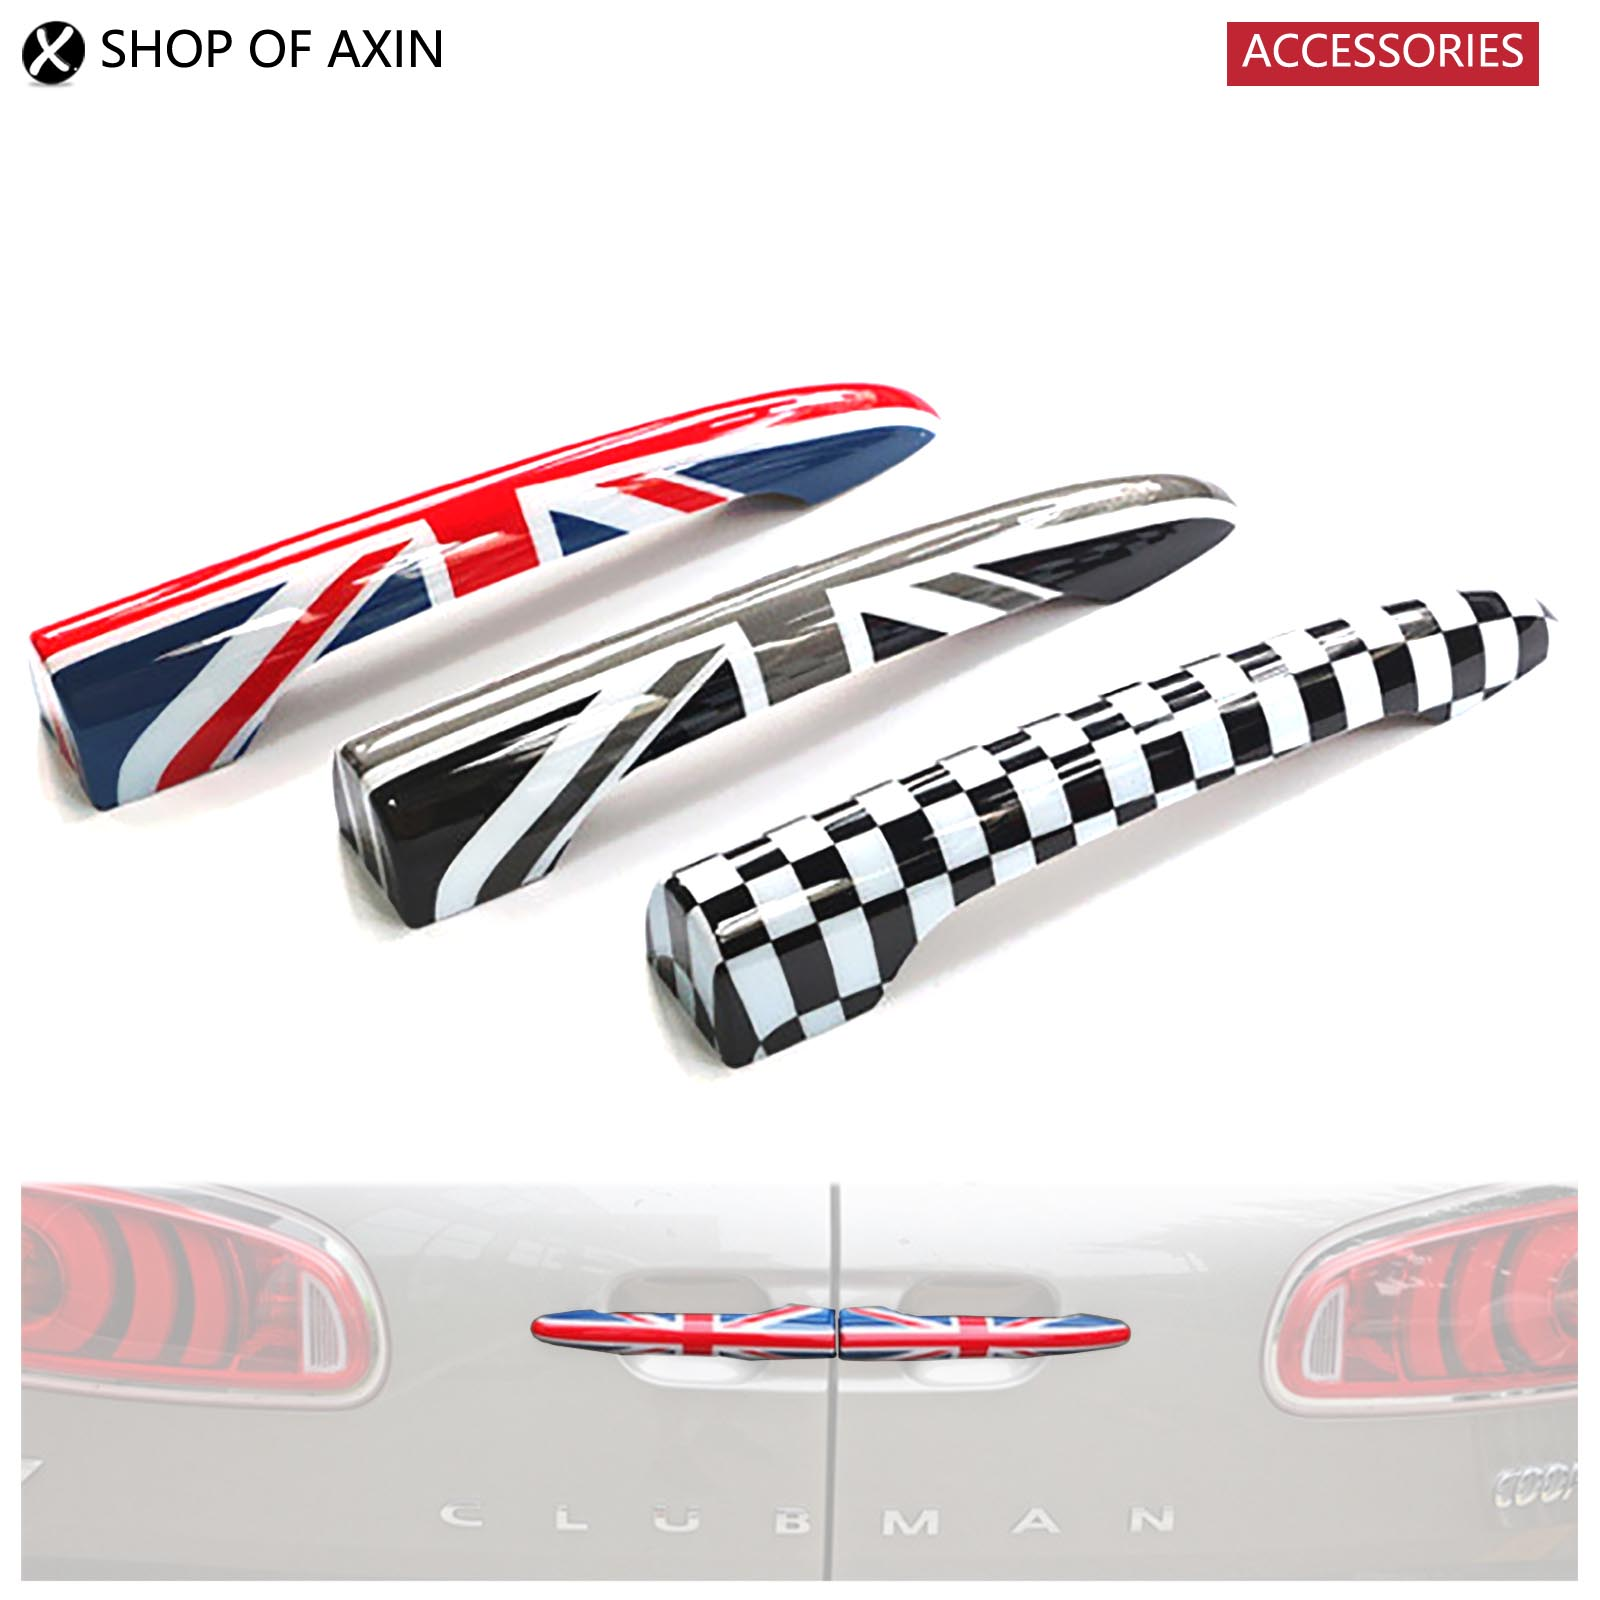 Mini Car Rear Door Handle Decoration Moulding Cover Smooth Surace (Union Jack, Grey UK, Checkered) For Mini Cooper Clubman F54 2016 mini clubman one coopers side door power window switch center console panel covers accessories car stickers for f54 6 door page 6